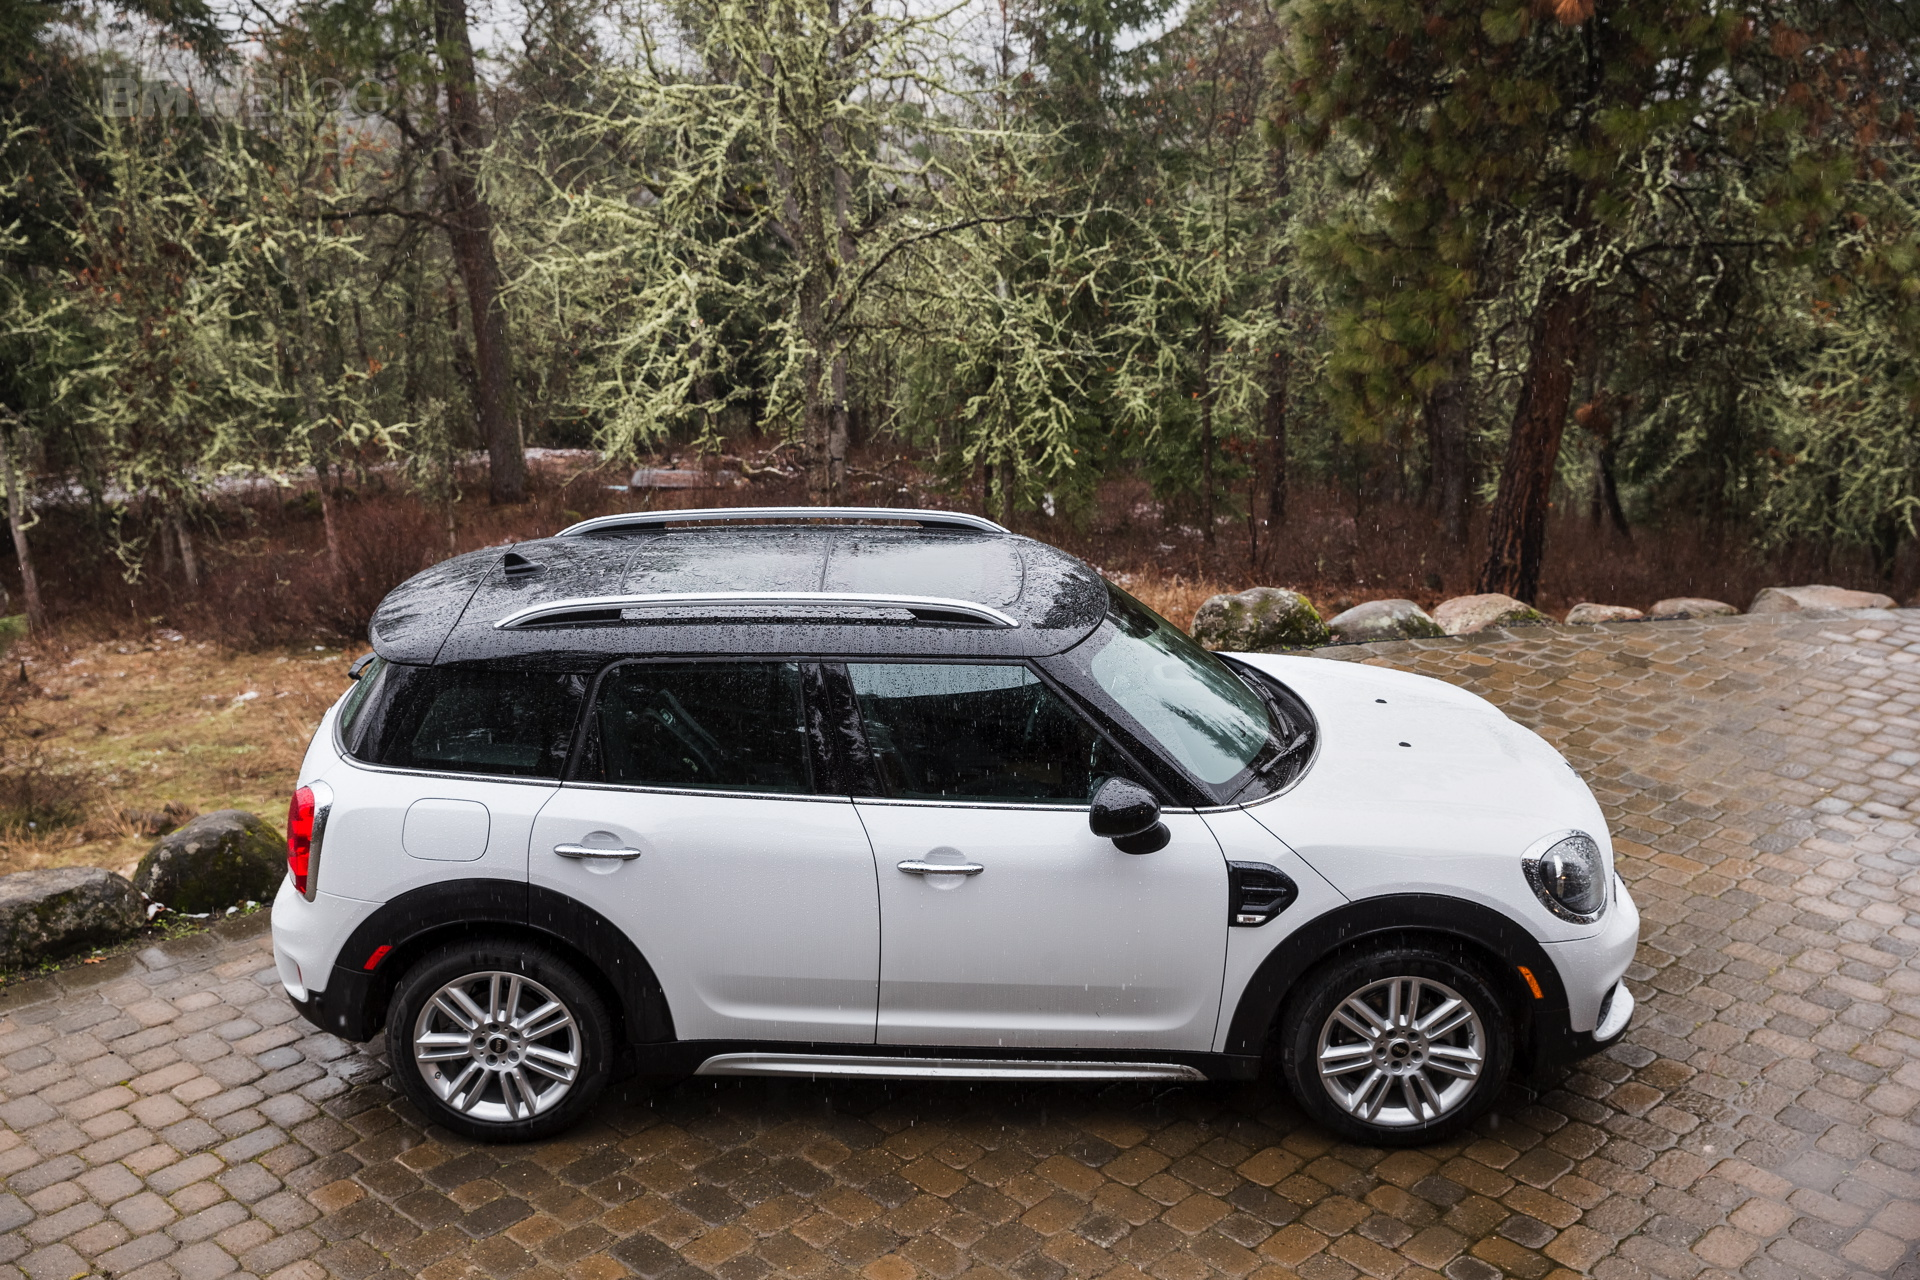 Car And Driver Tests Mini Cooper Countryman 15t Manual